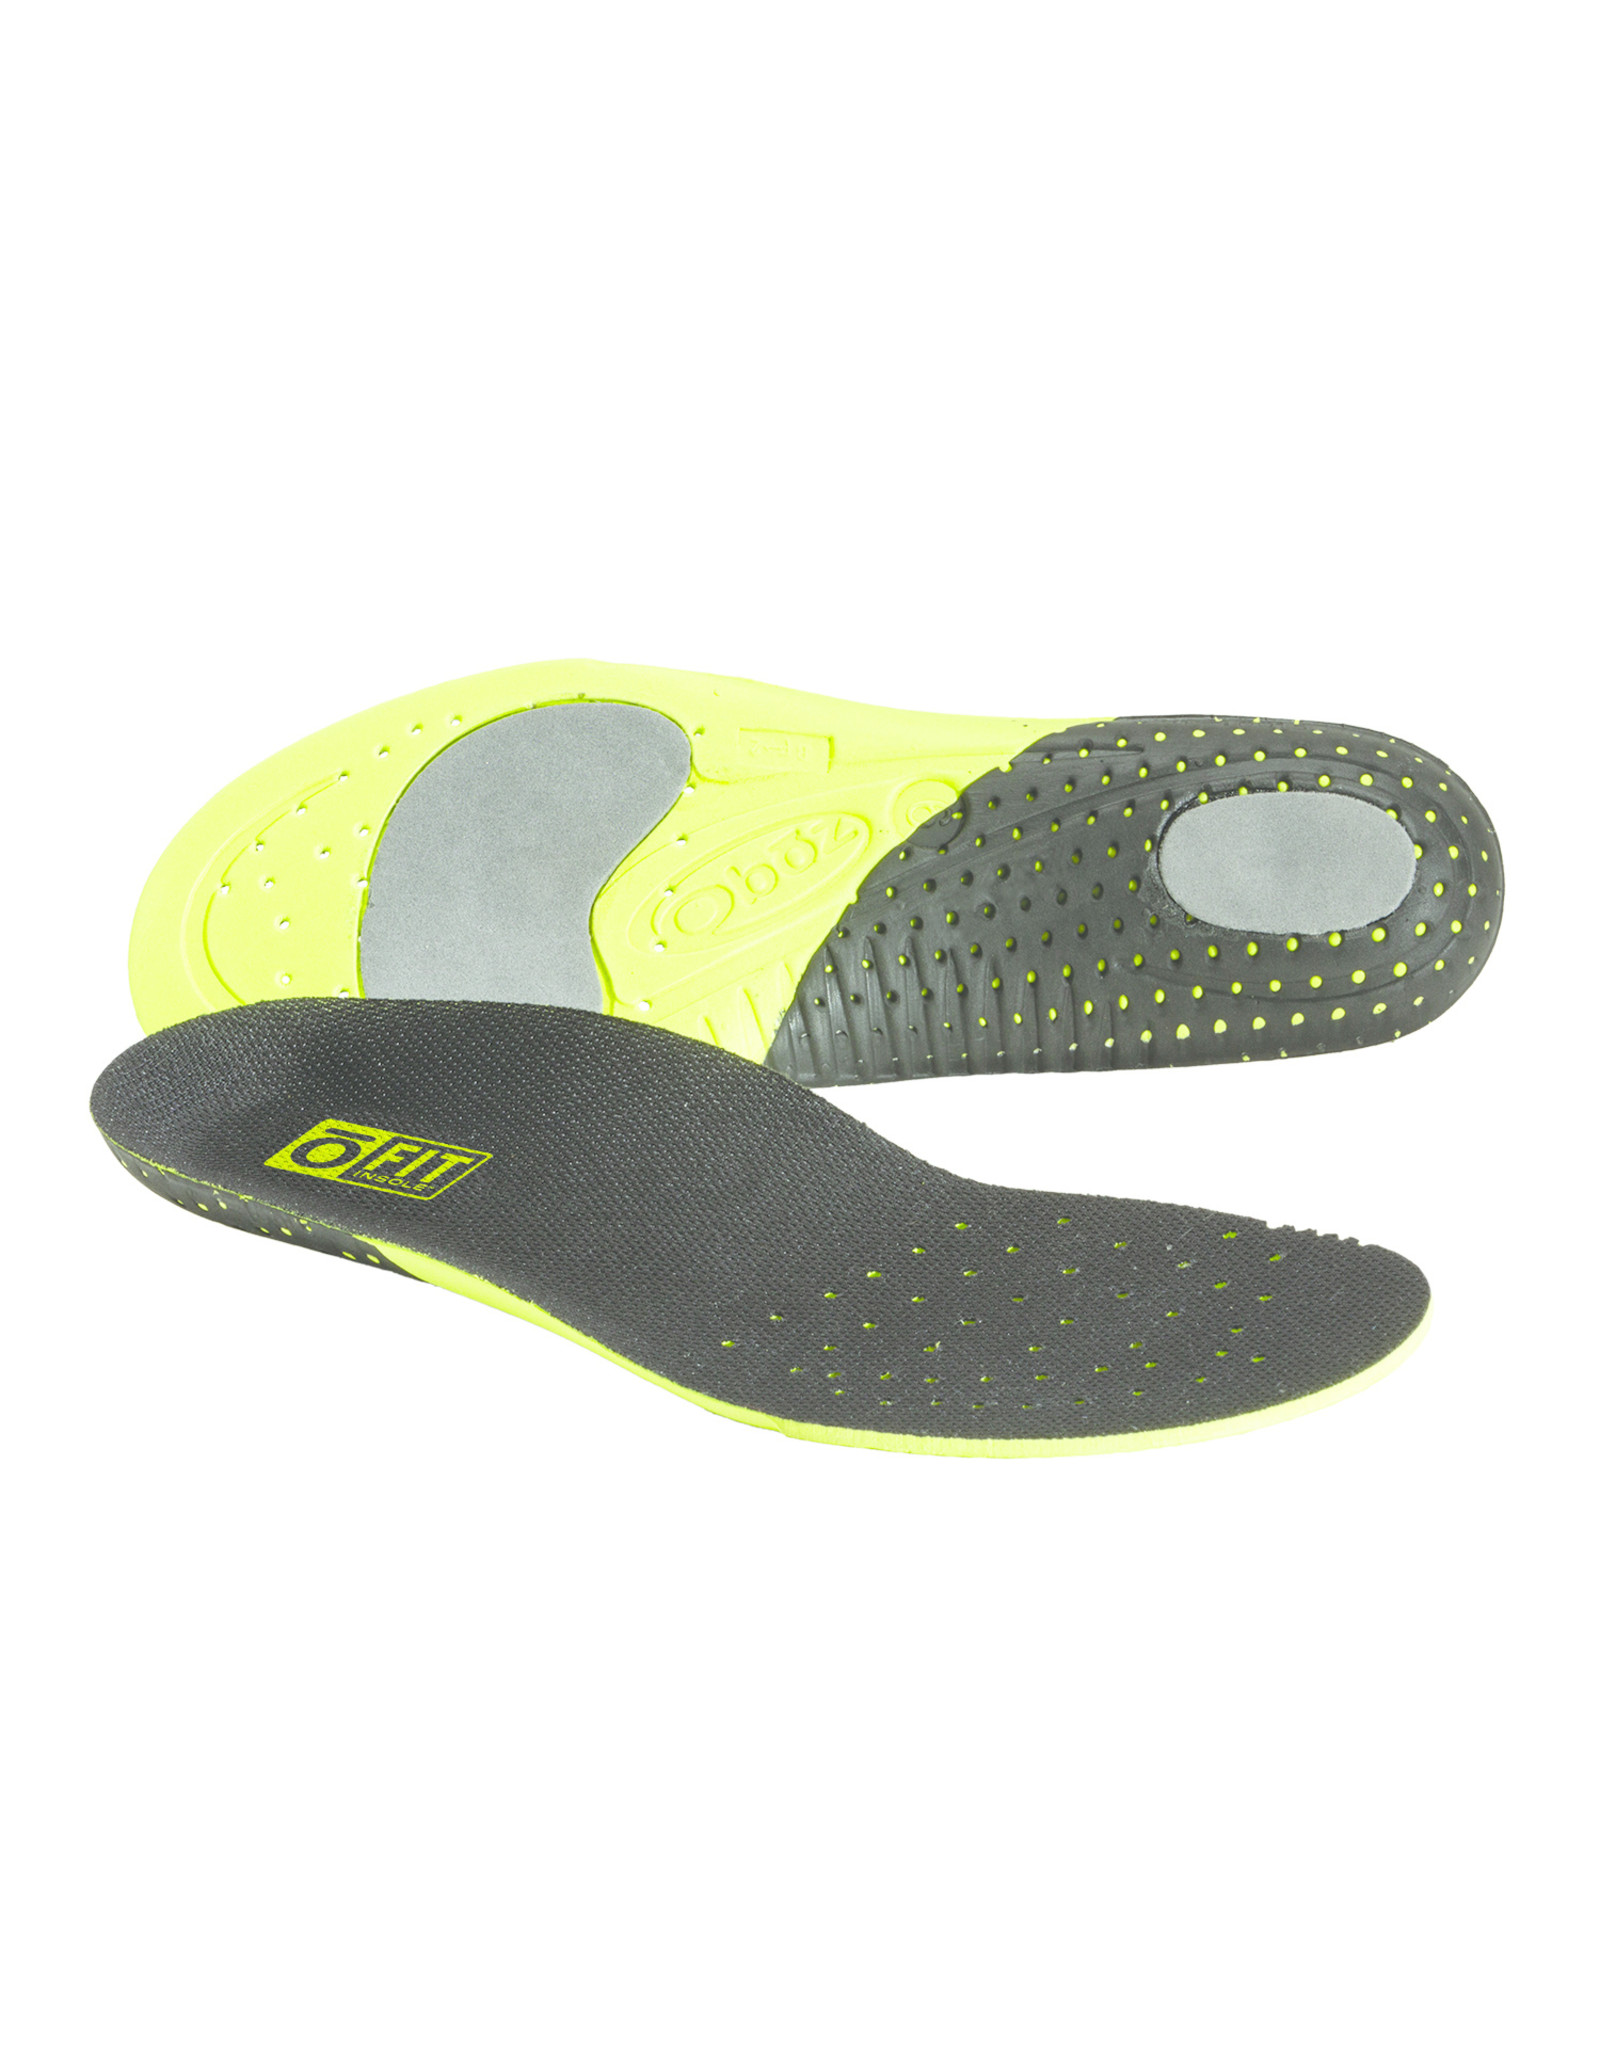 Oboz Bridger Low Waterproof-BDry